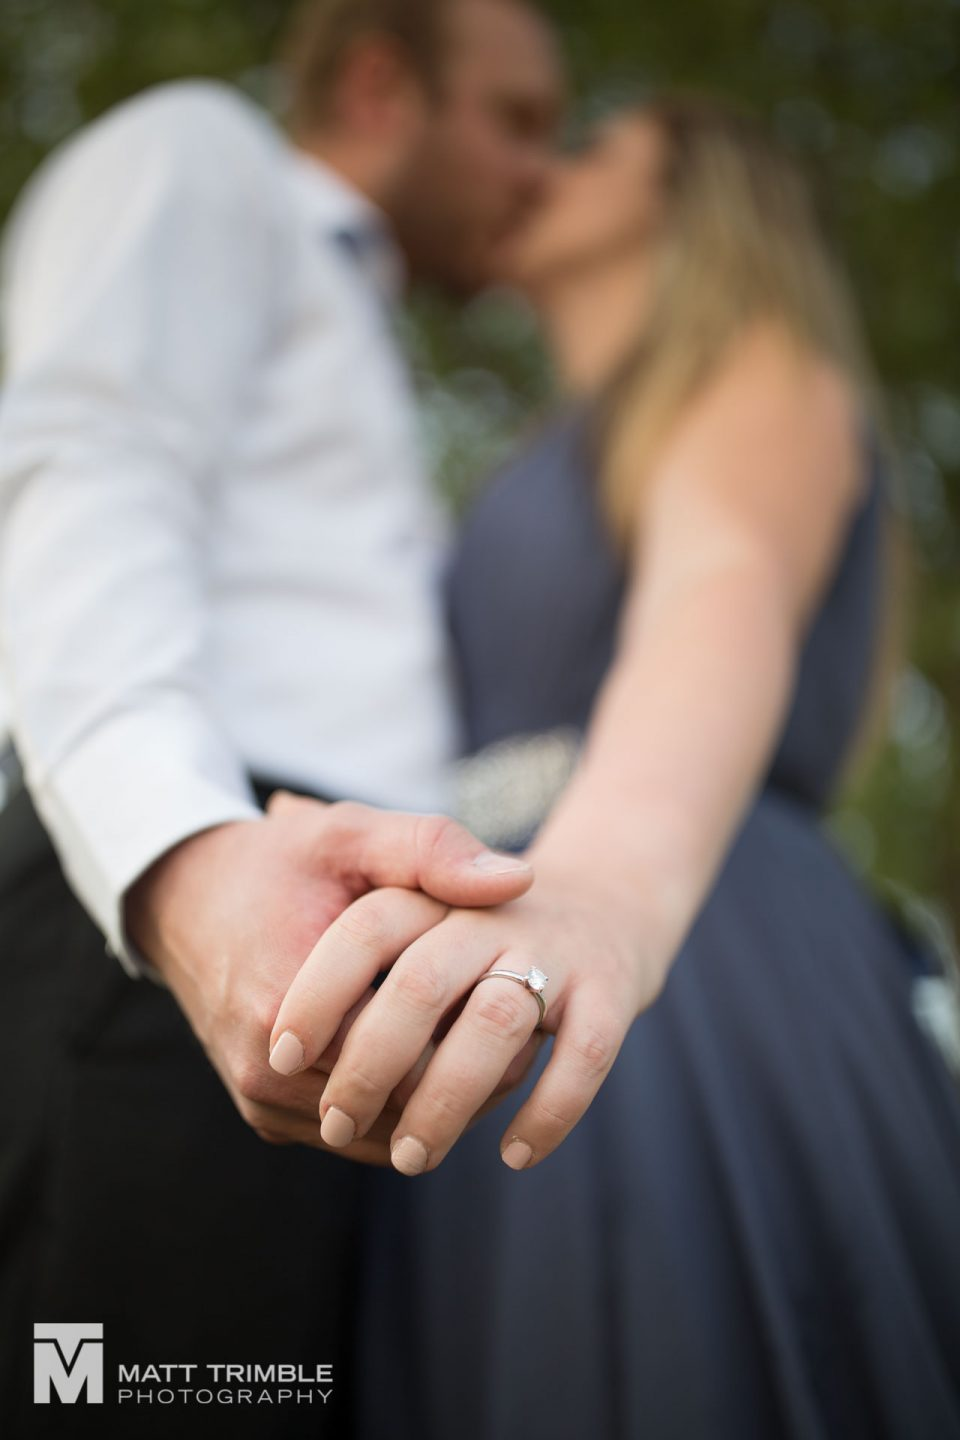 close-up-engagement-photo of hands